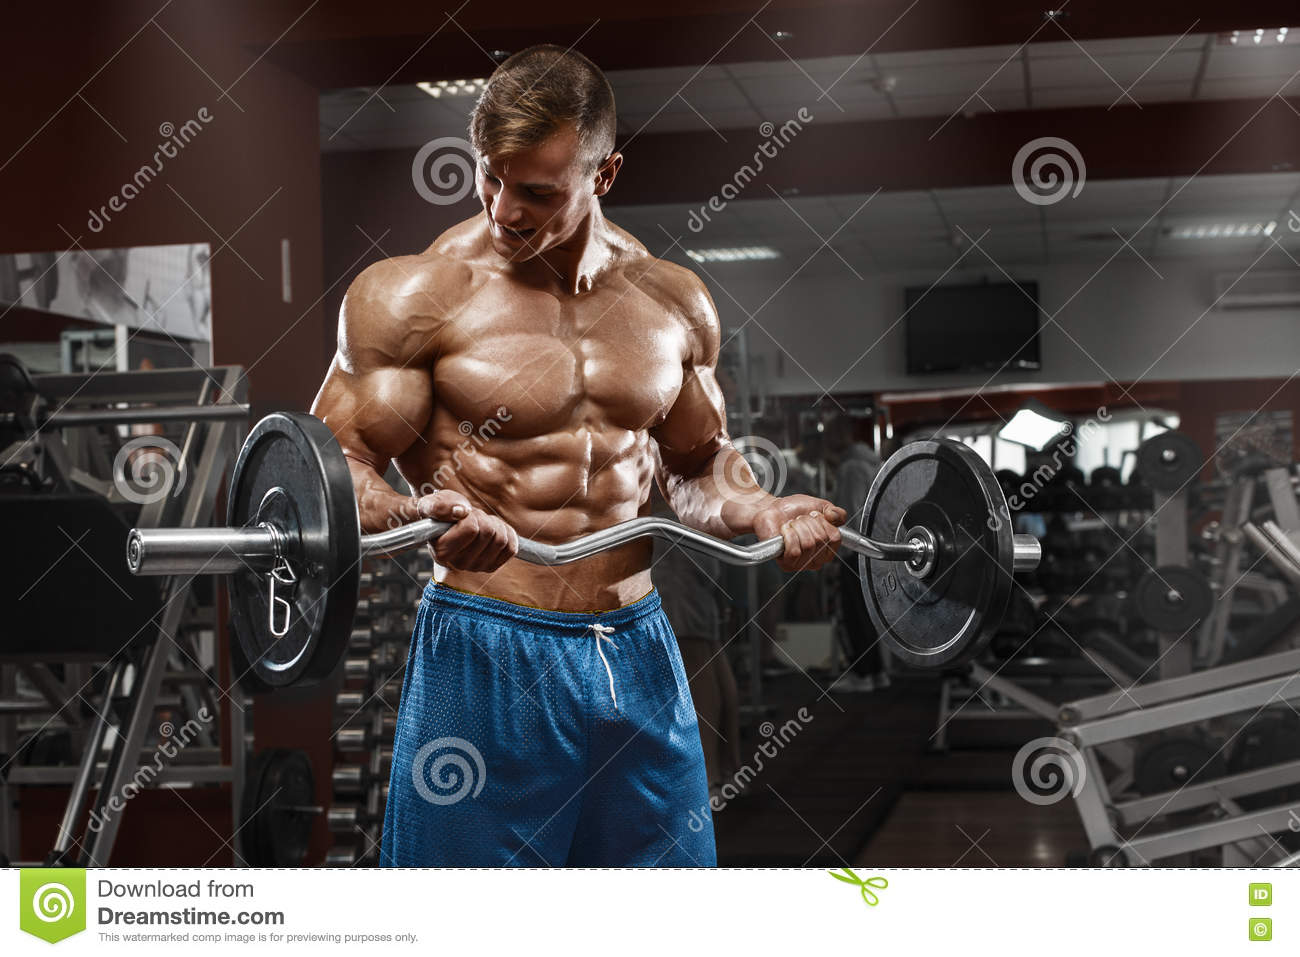 Muscular man working out in gym doing exercises with barbell at biceps, male naked torso abs